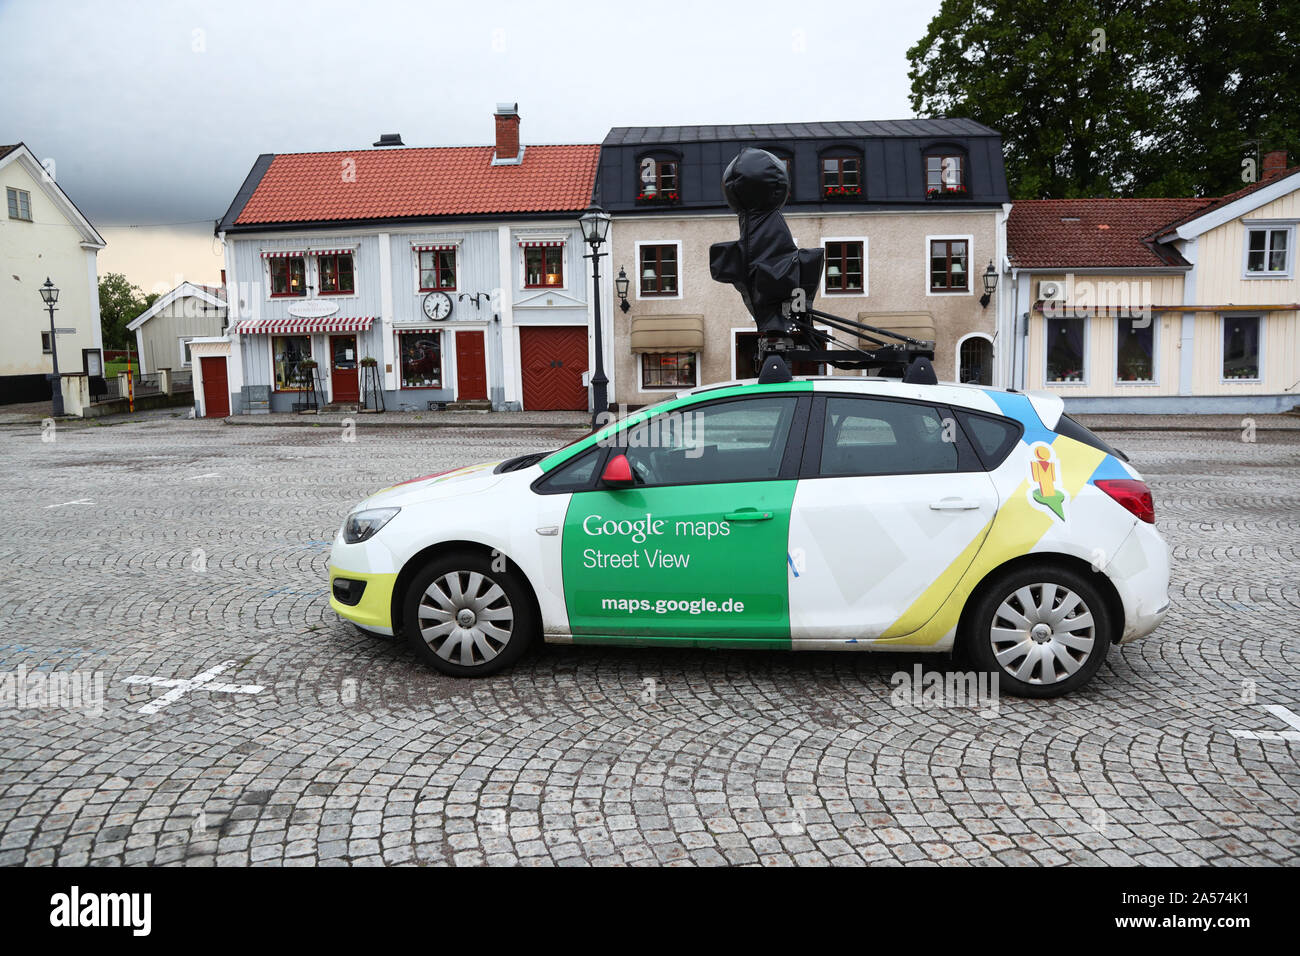 Camera car from Google maps, street view.Photo Jeppe Gustafsson Stock Photo